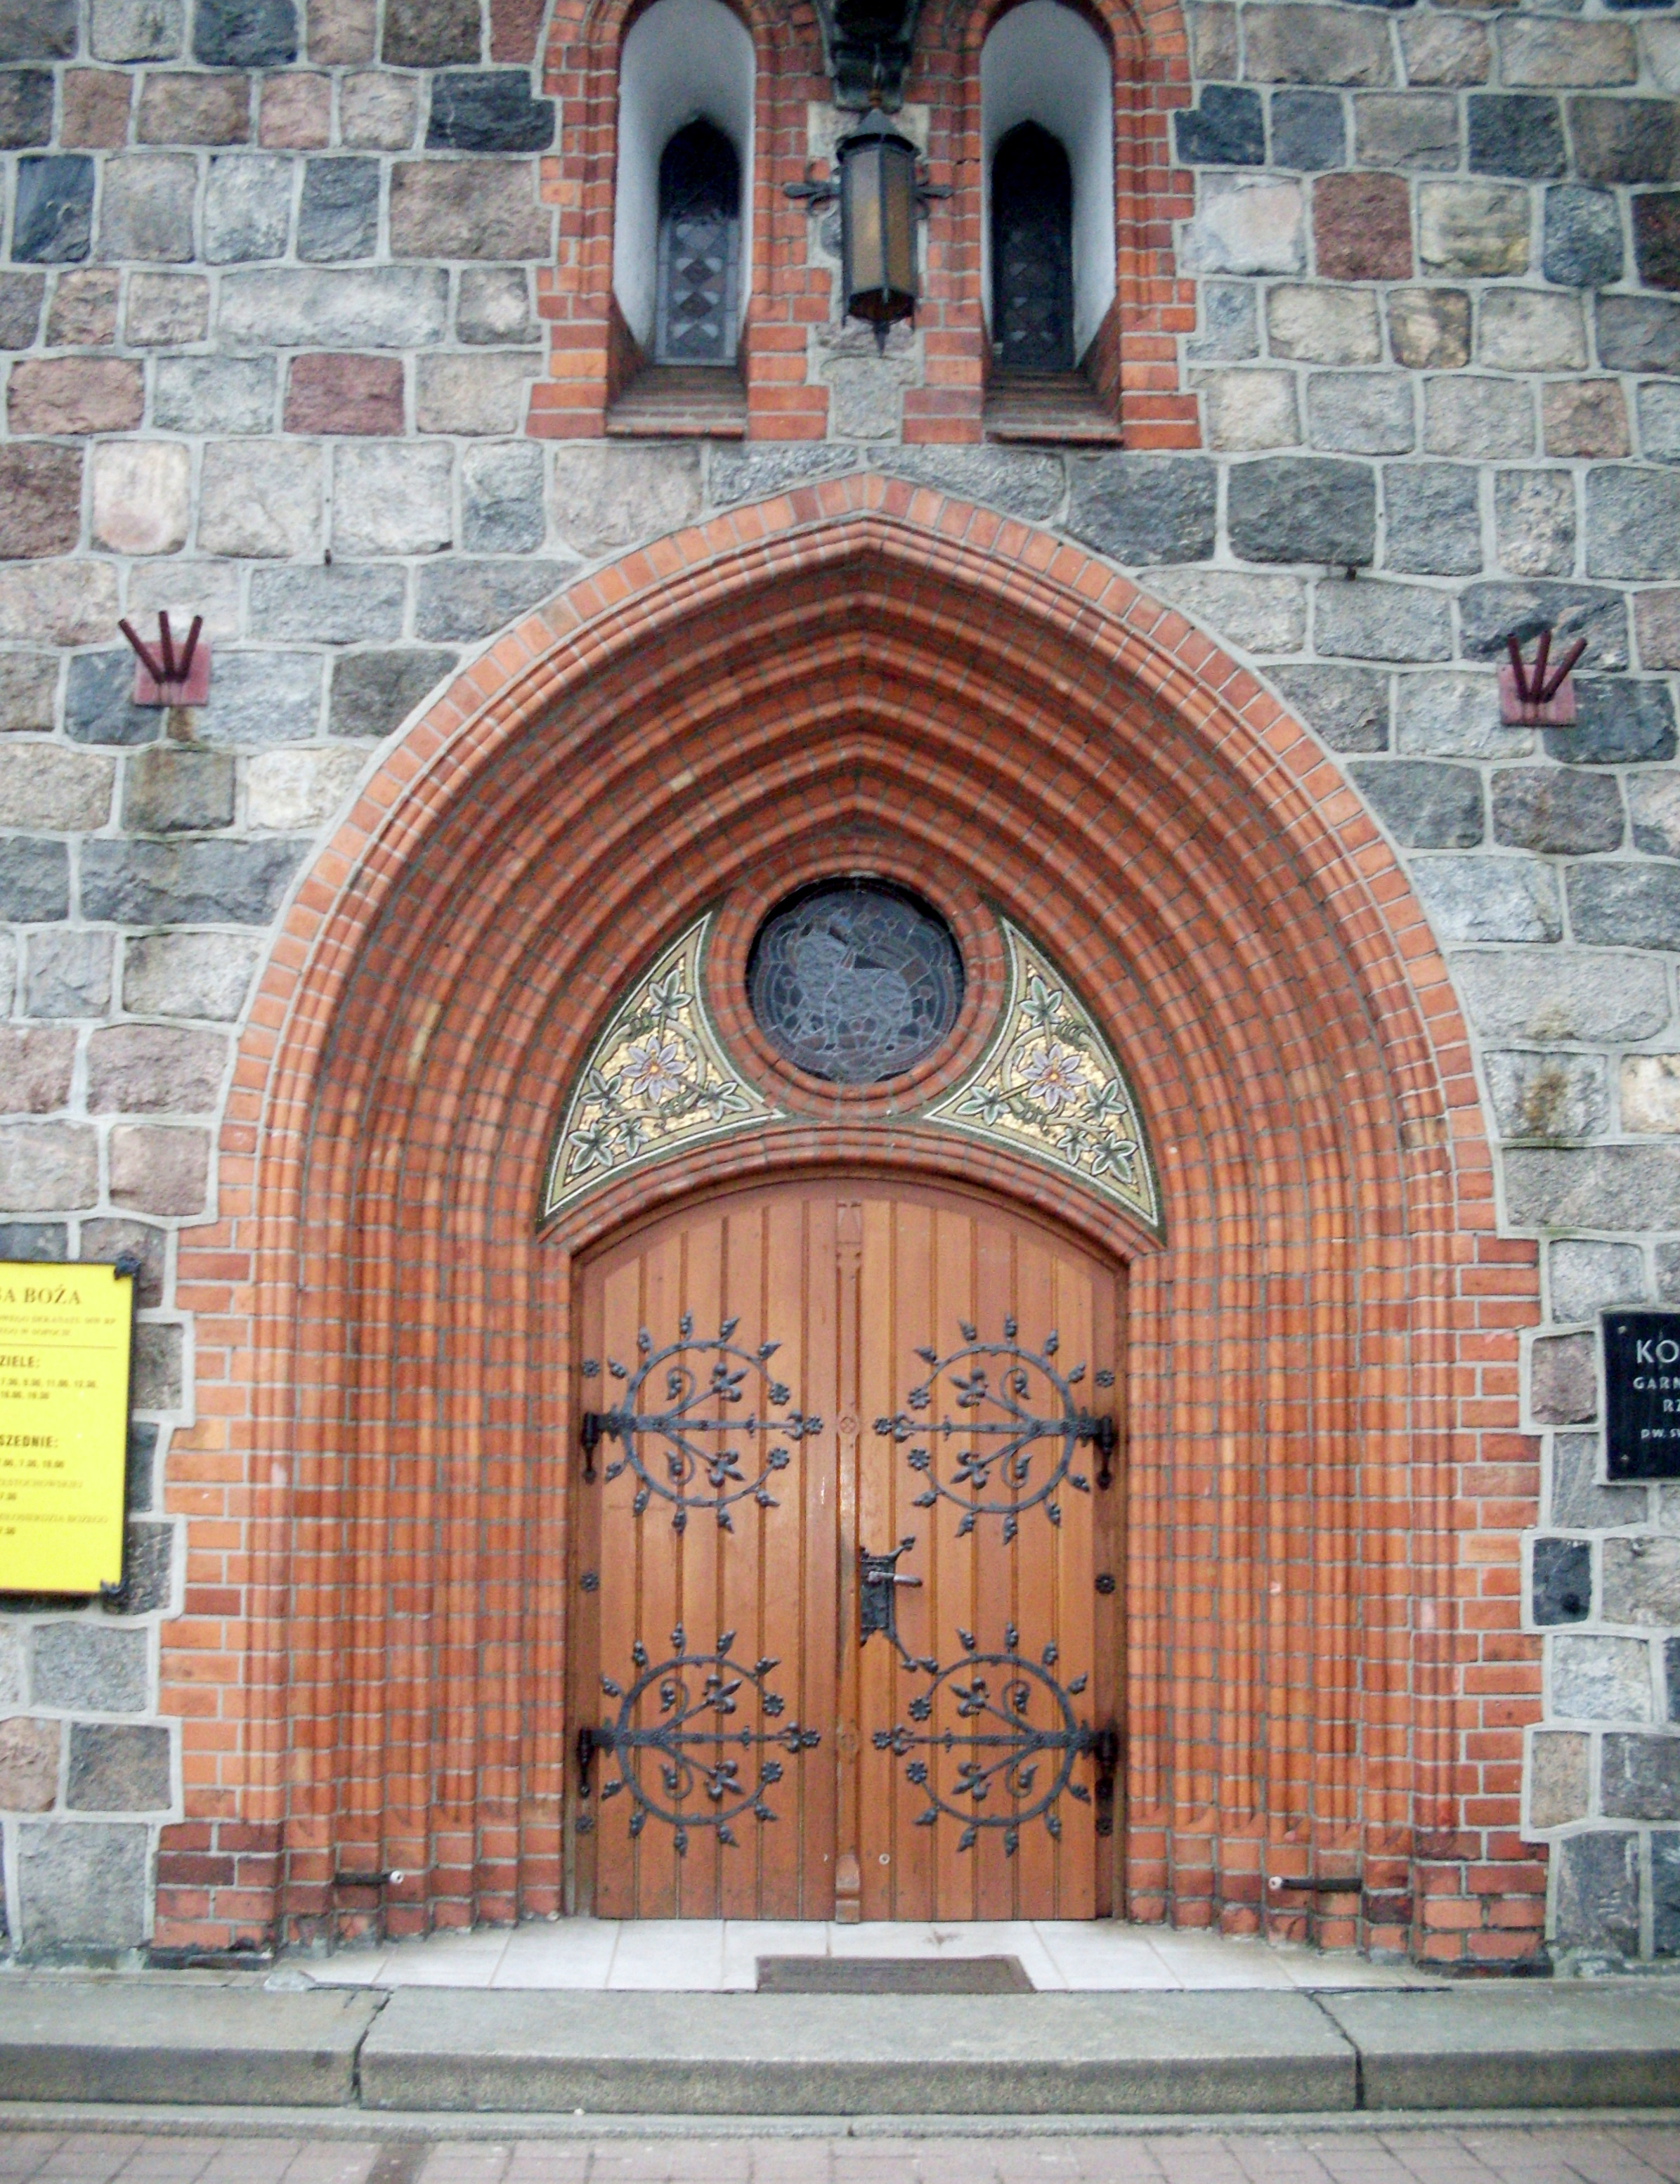 FileArtistic main door and portal of Church of Saint George in Sopot.jpg & File:Artistic main door and portal of Church of Saint George in ...